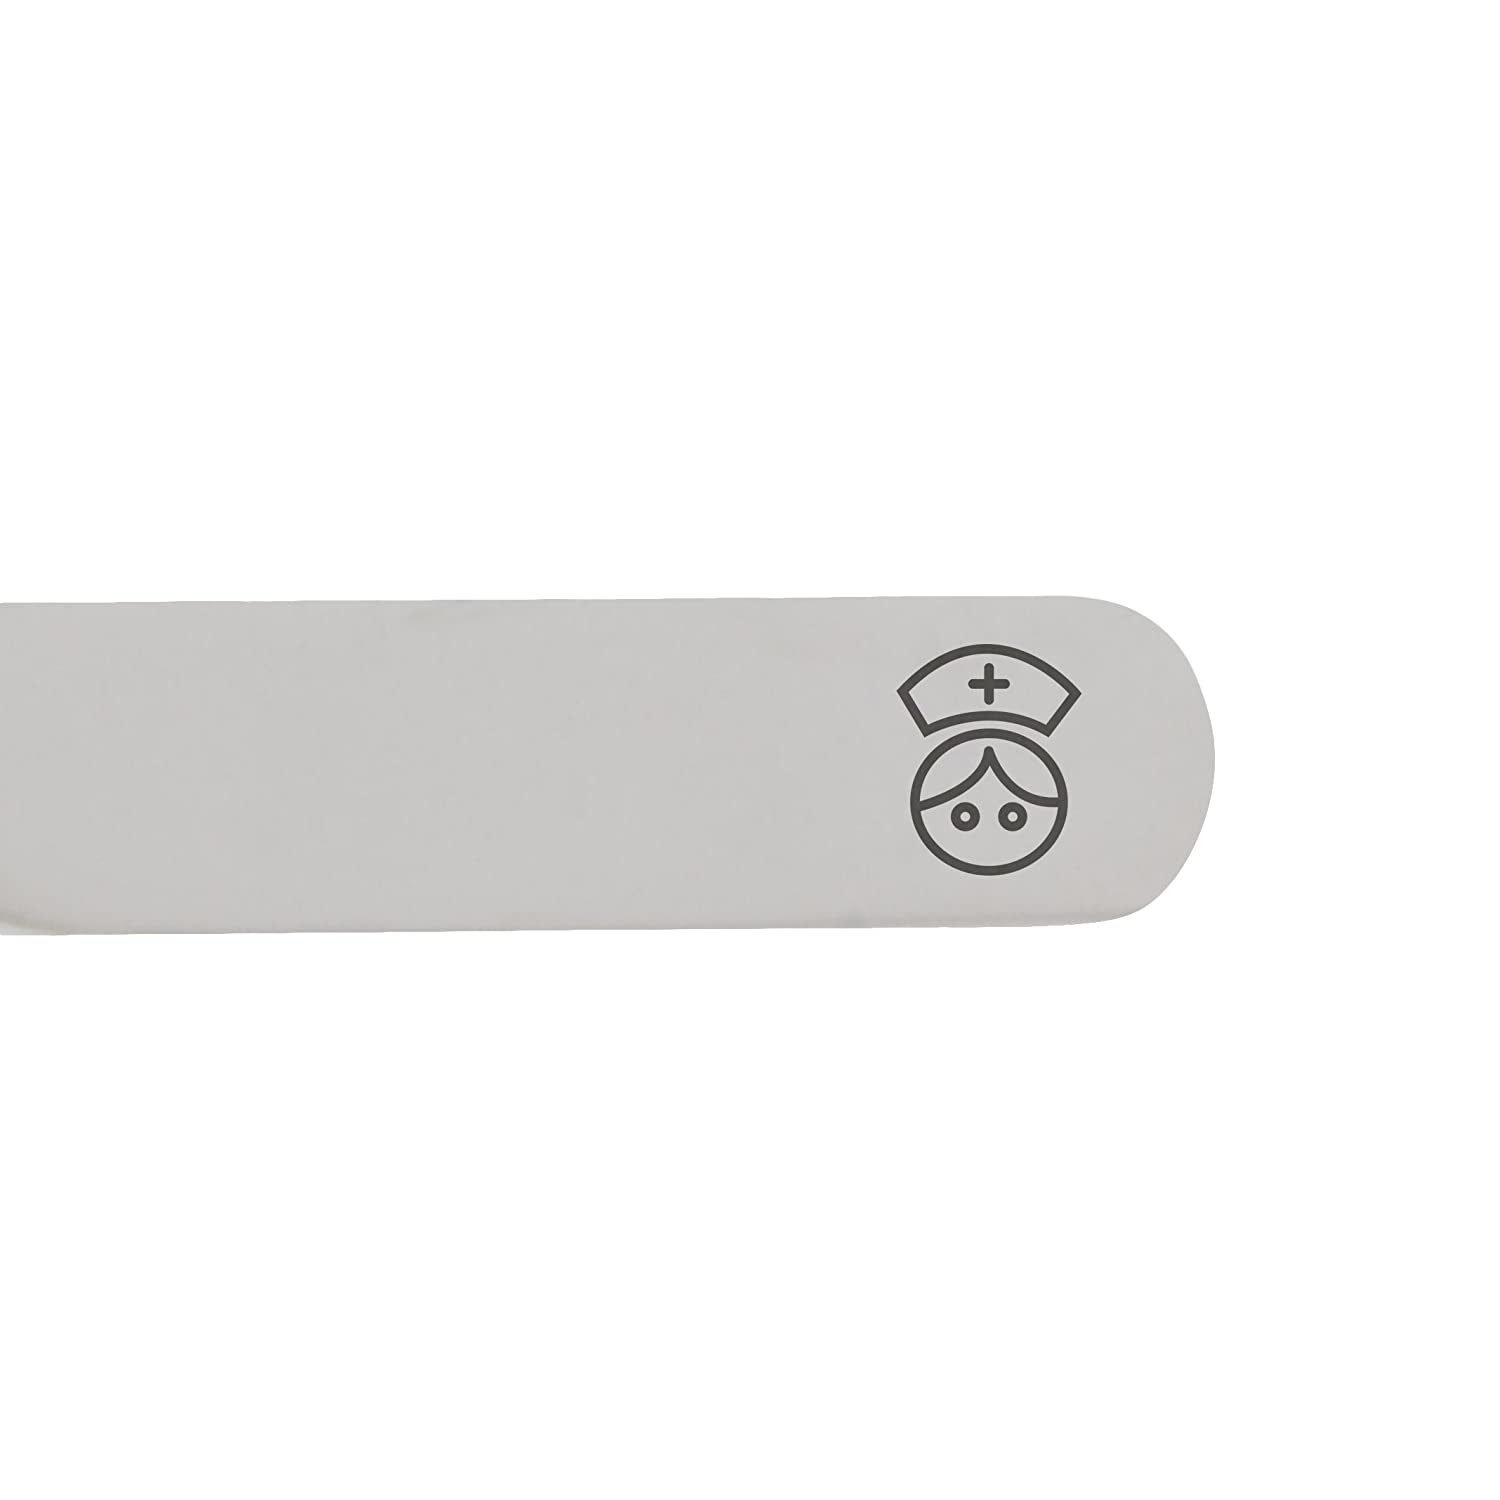 2.5 Inch Metal Collar Stiffeners Made In USA MODERN GOODS SHOP Stainless Steel Collar Stays With Laser Engraved Dental Assistant Design